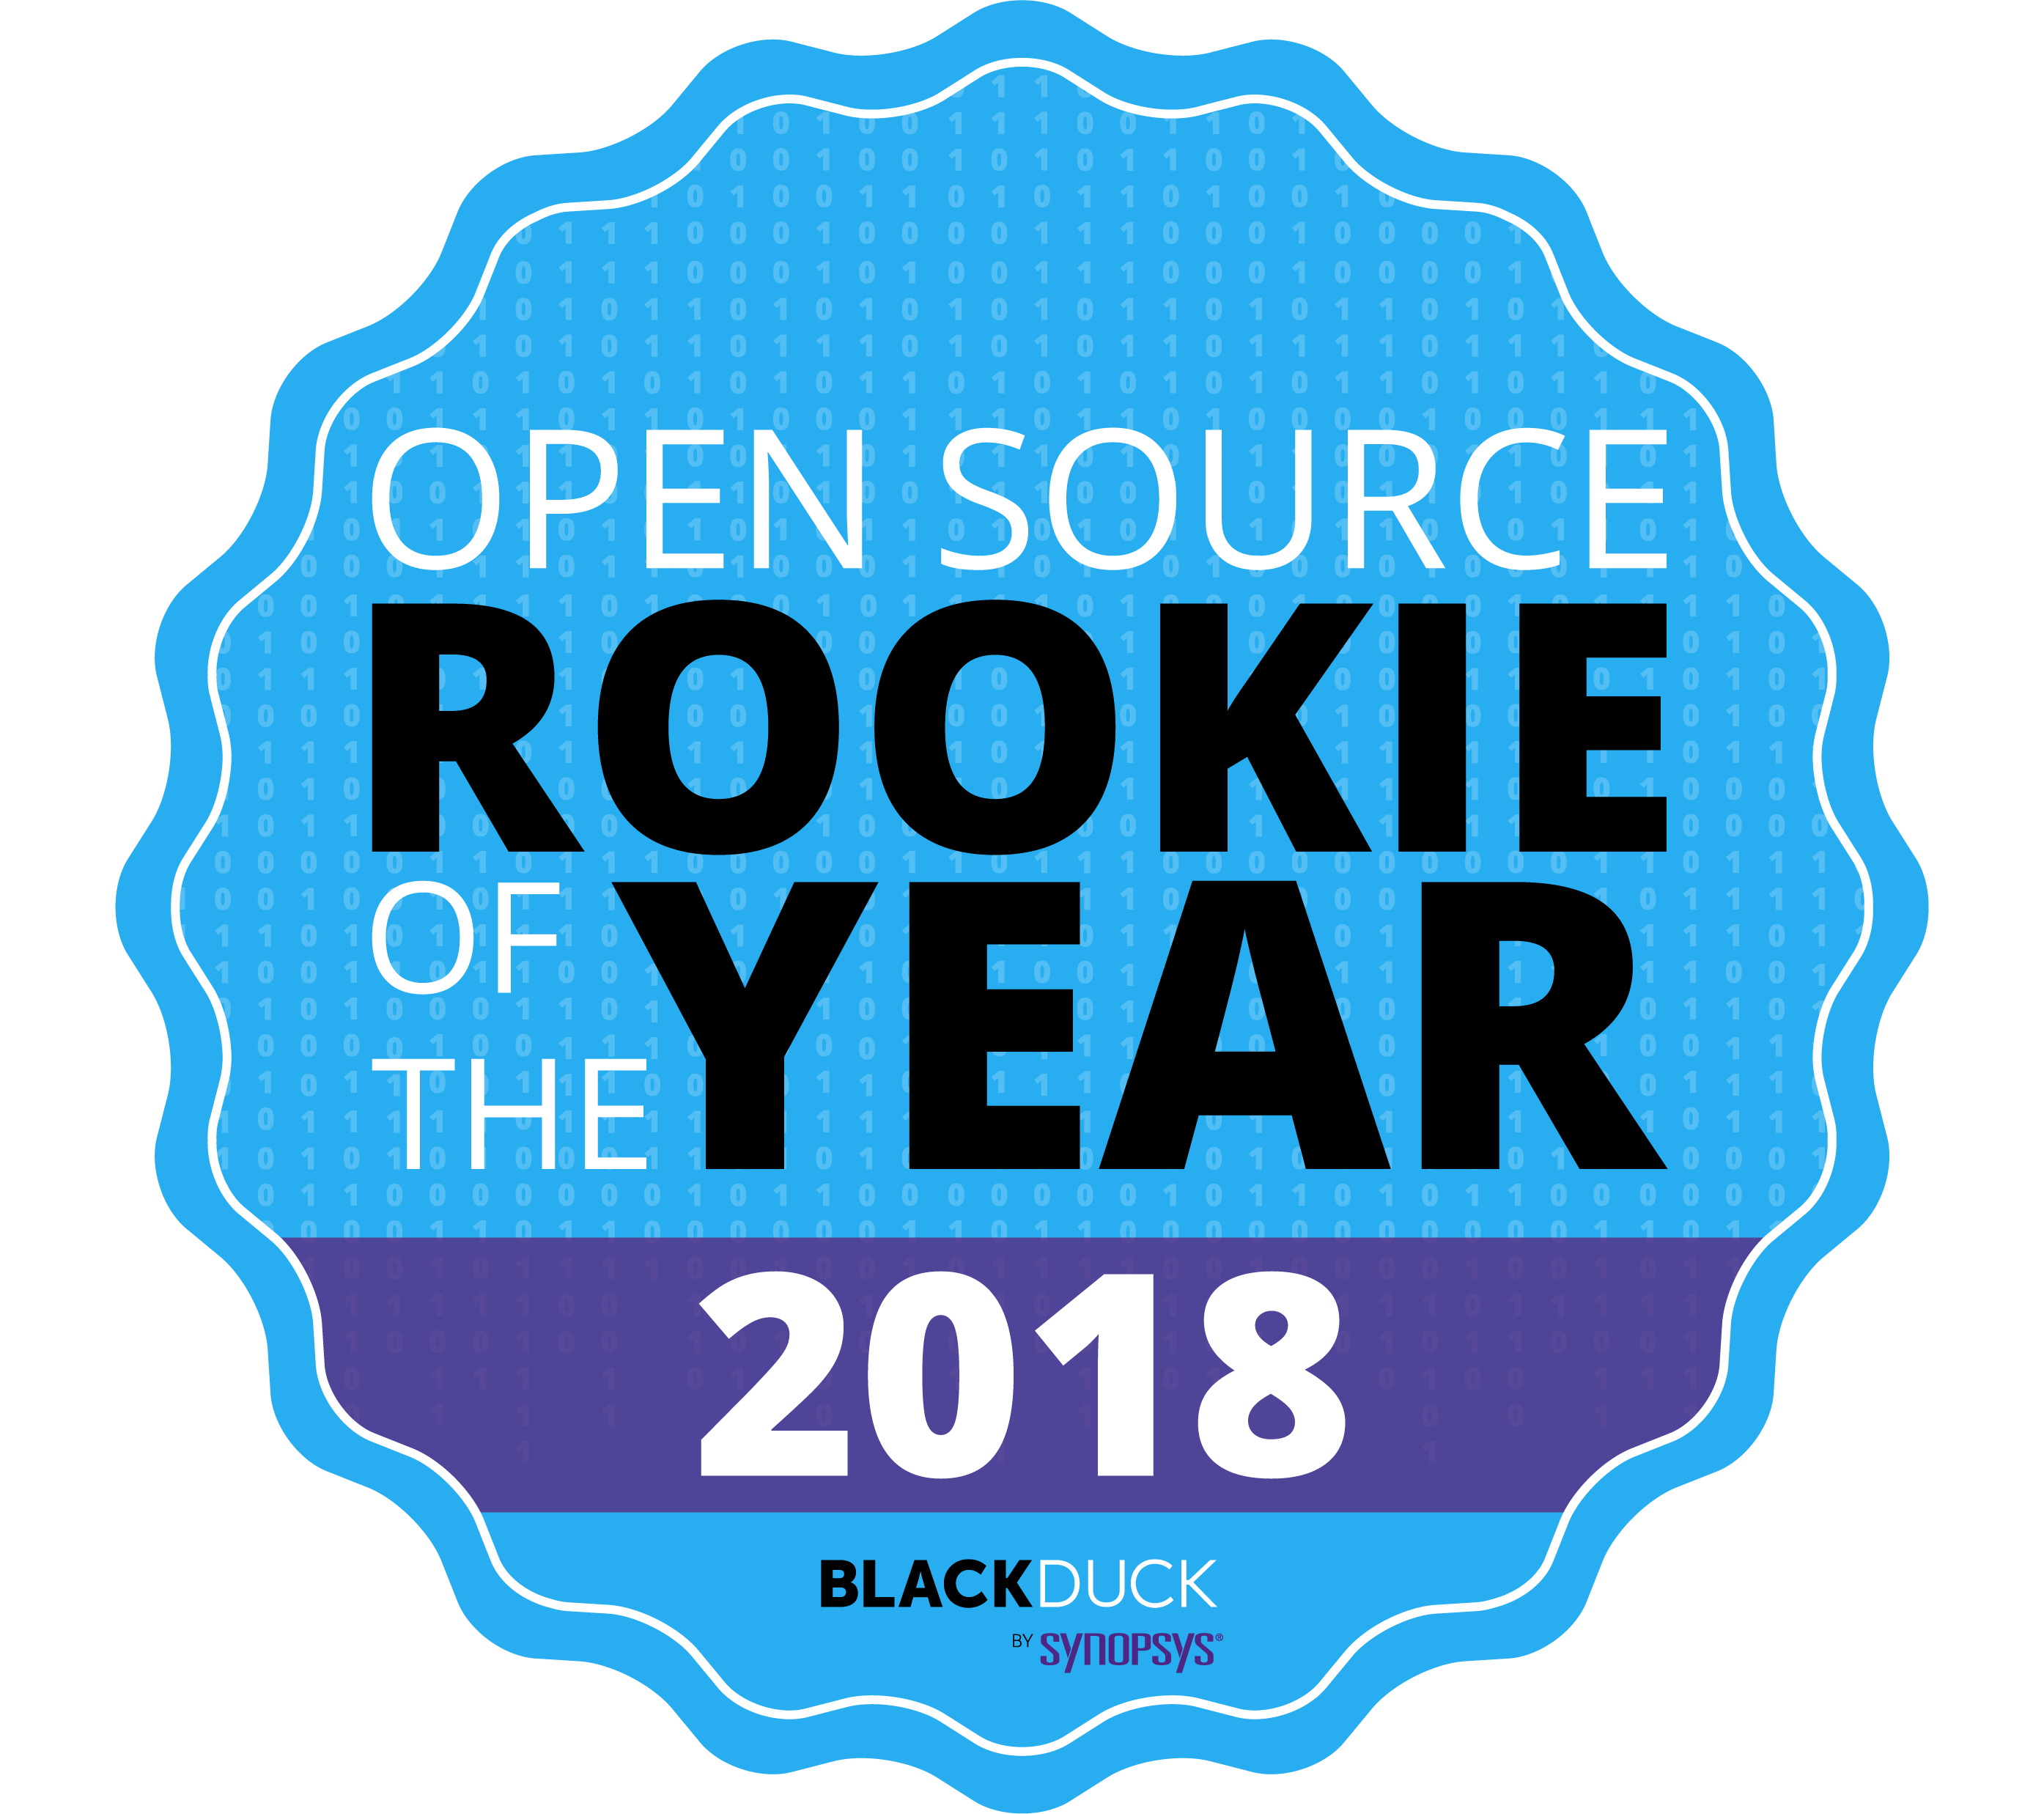 Synopsys Reveals Its Open-source Rookies Of The Year